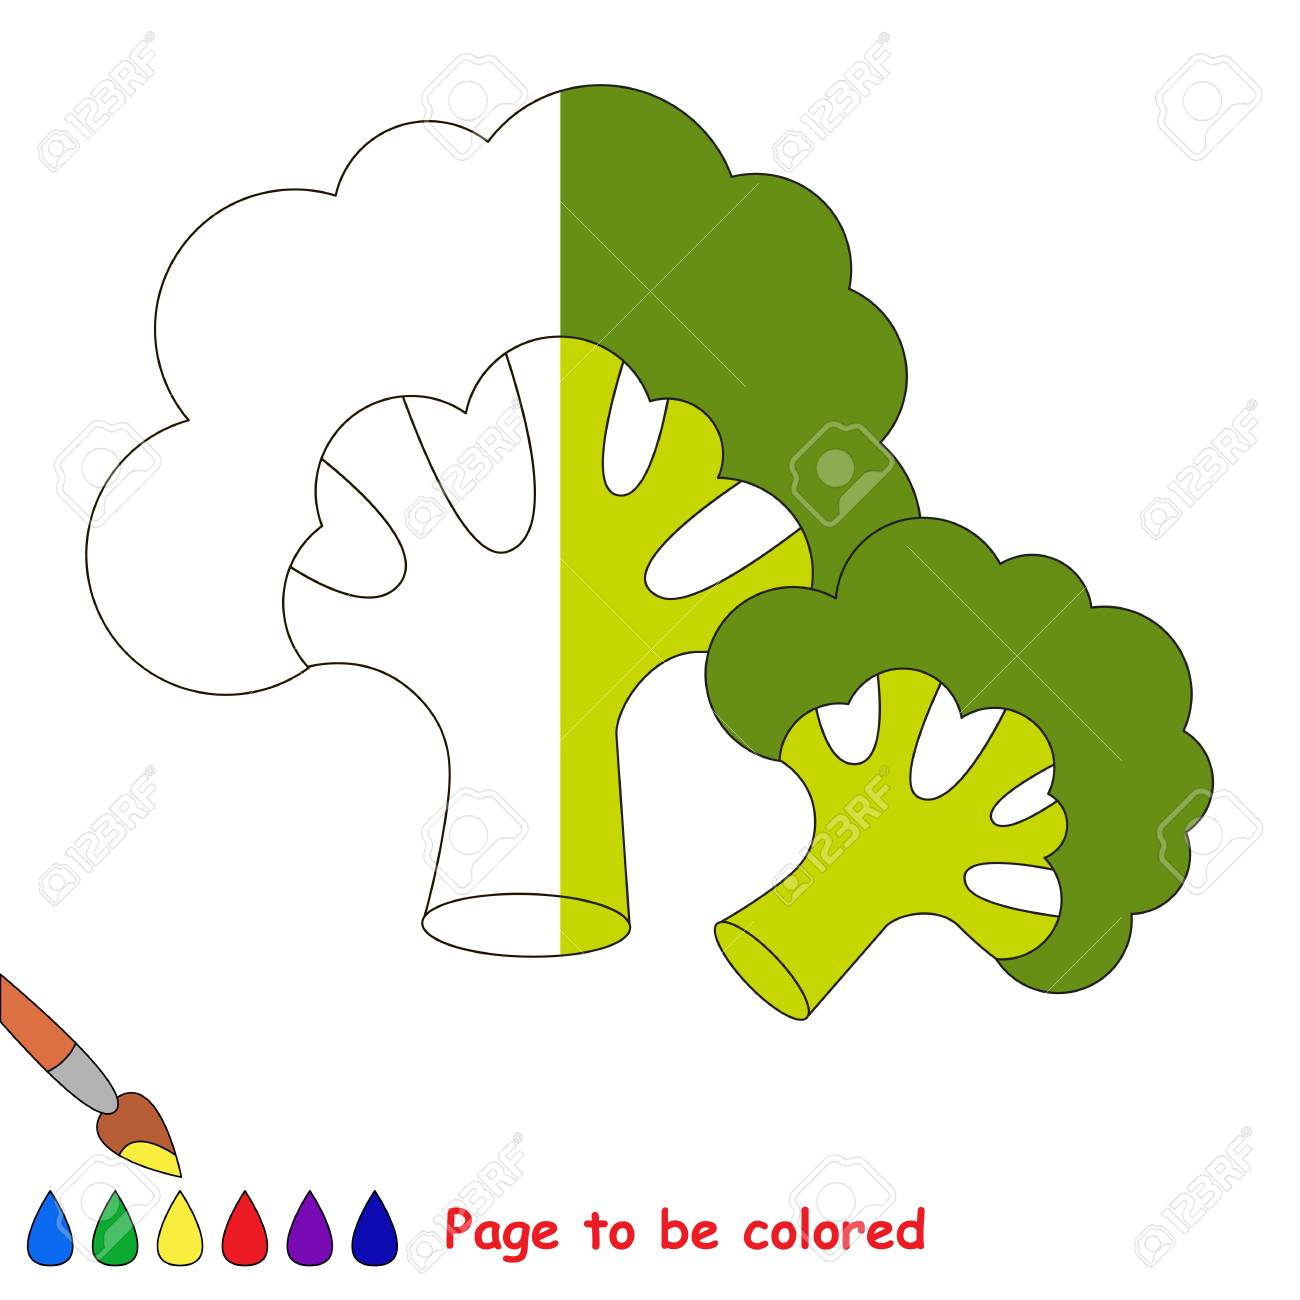 One Broccoli, The Coloring Book To Educate Preschool Kids With ...